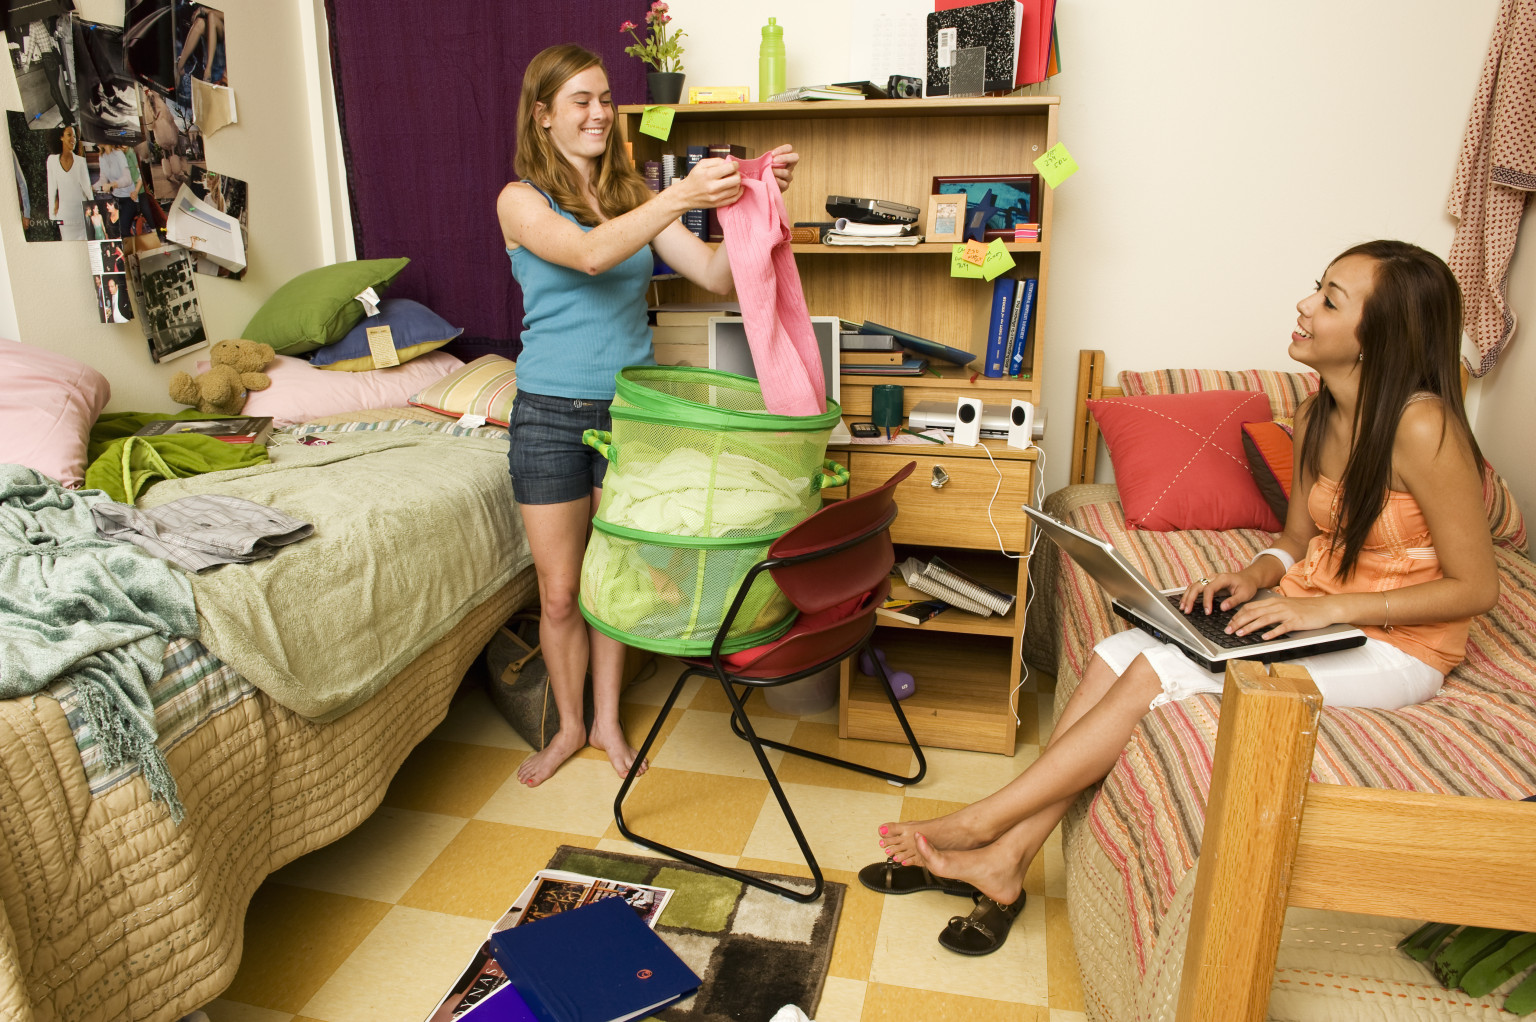 college roommate advice from students who have been there video college roommate advice from students who have been there video the huffington post